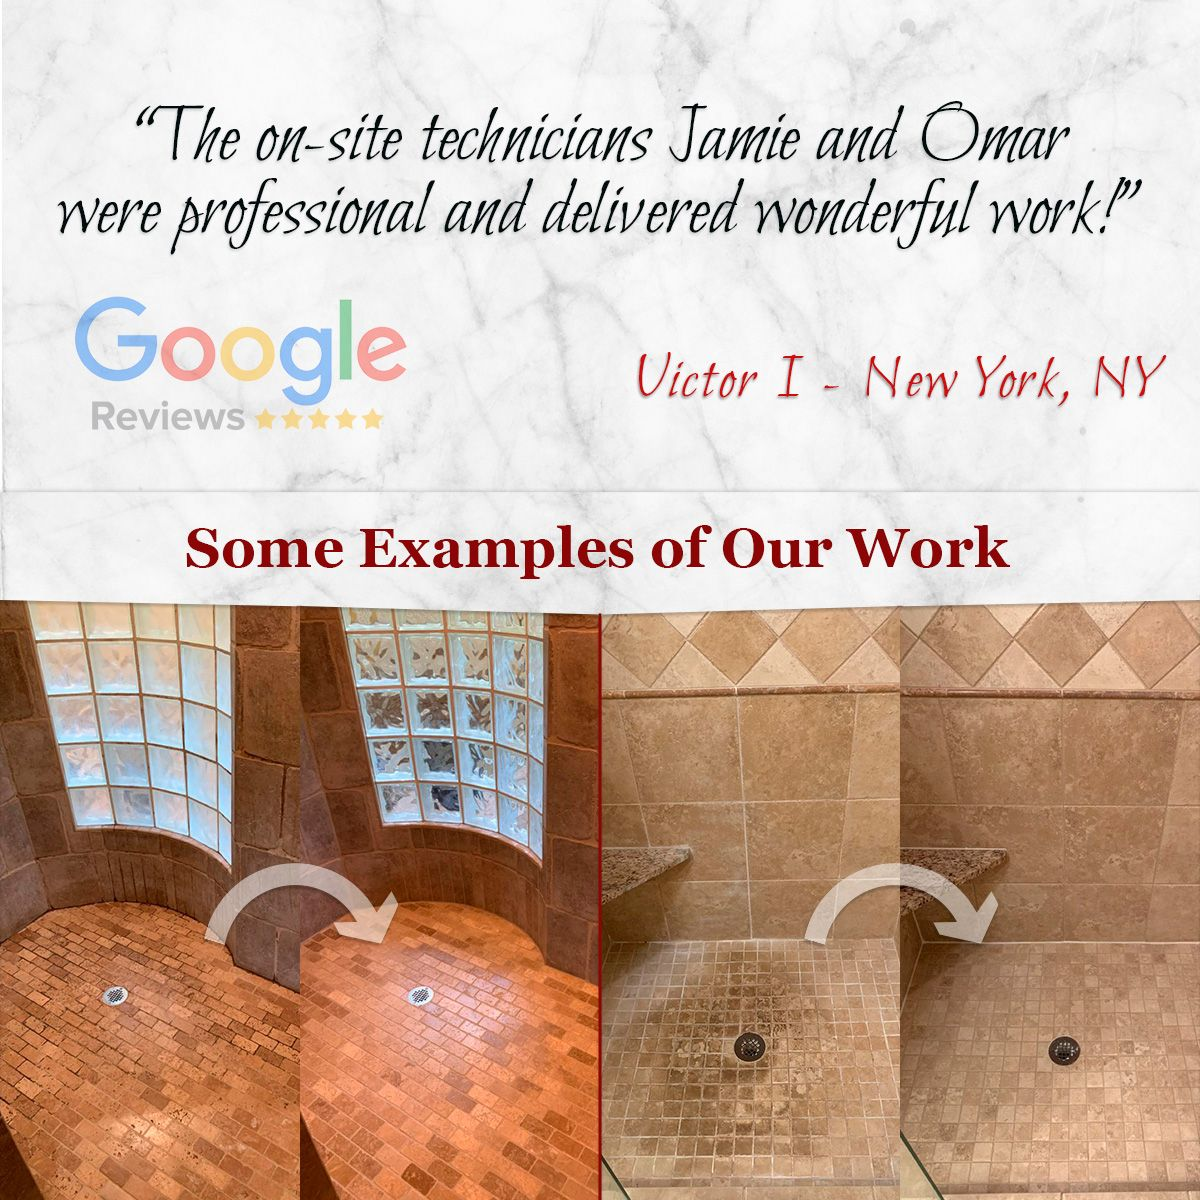 The on-site technicians Jamie and Omar were professional and delivered wonderful work!